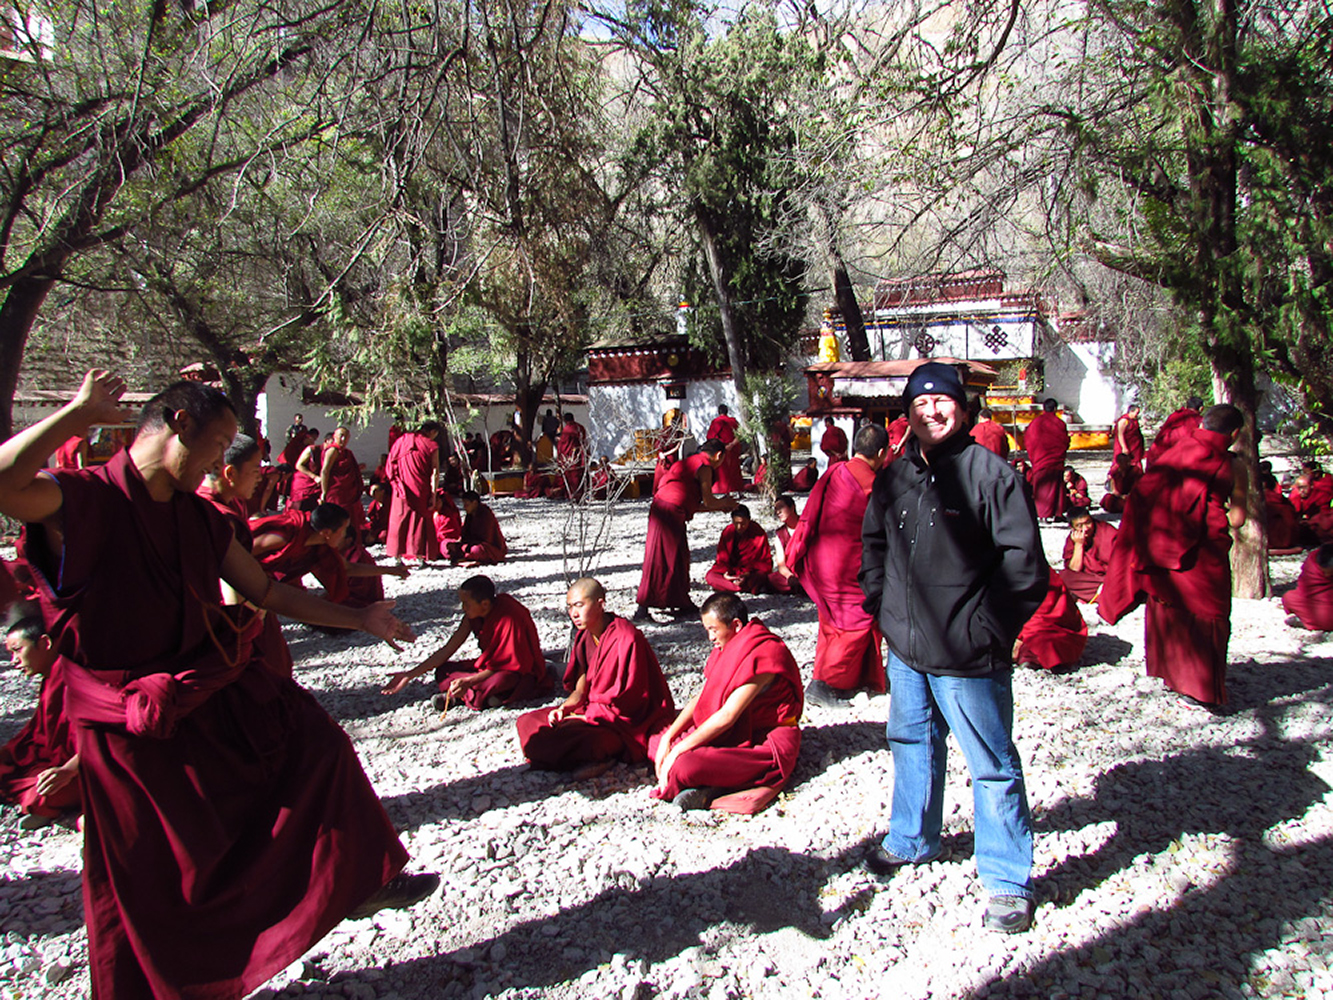 Sera monastery, Tibet, China. In the middle of a Monk debate